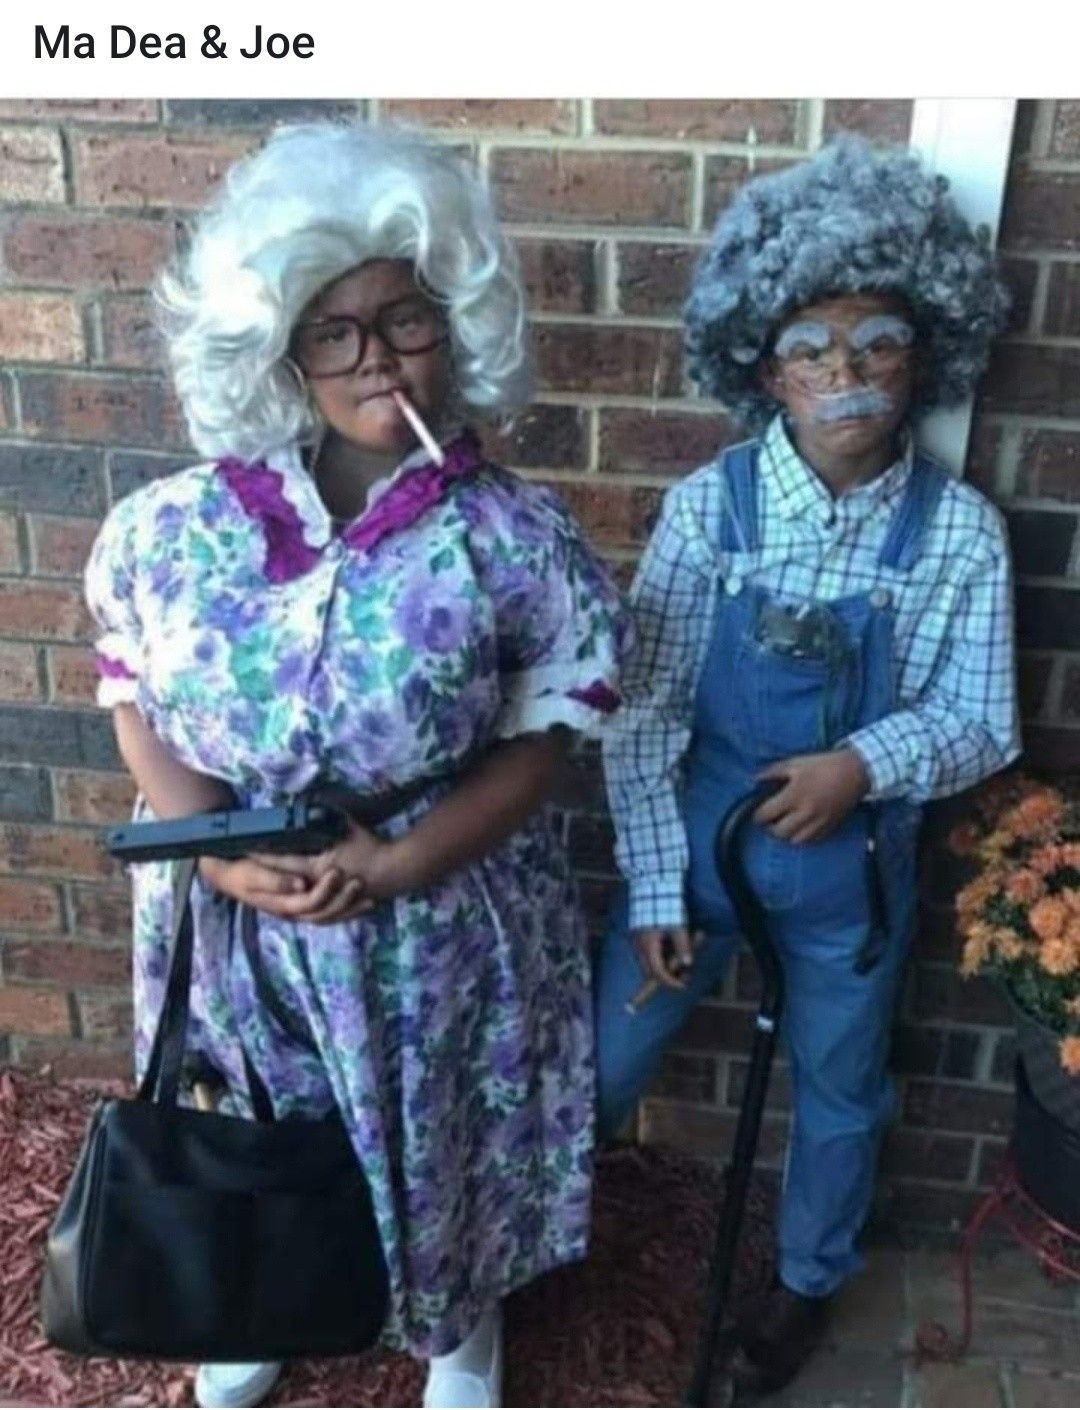 Madea and Joe Madea, Costumes, Fashion